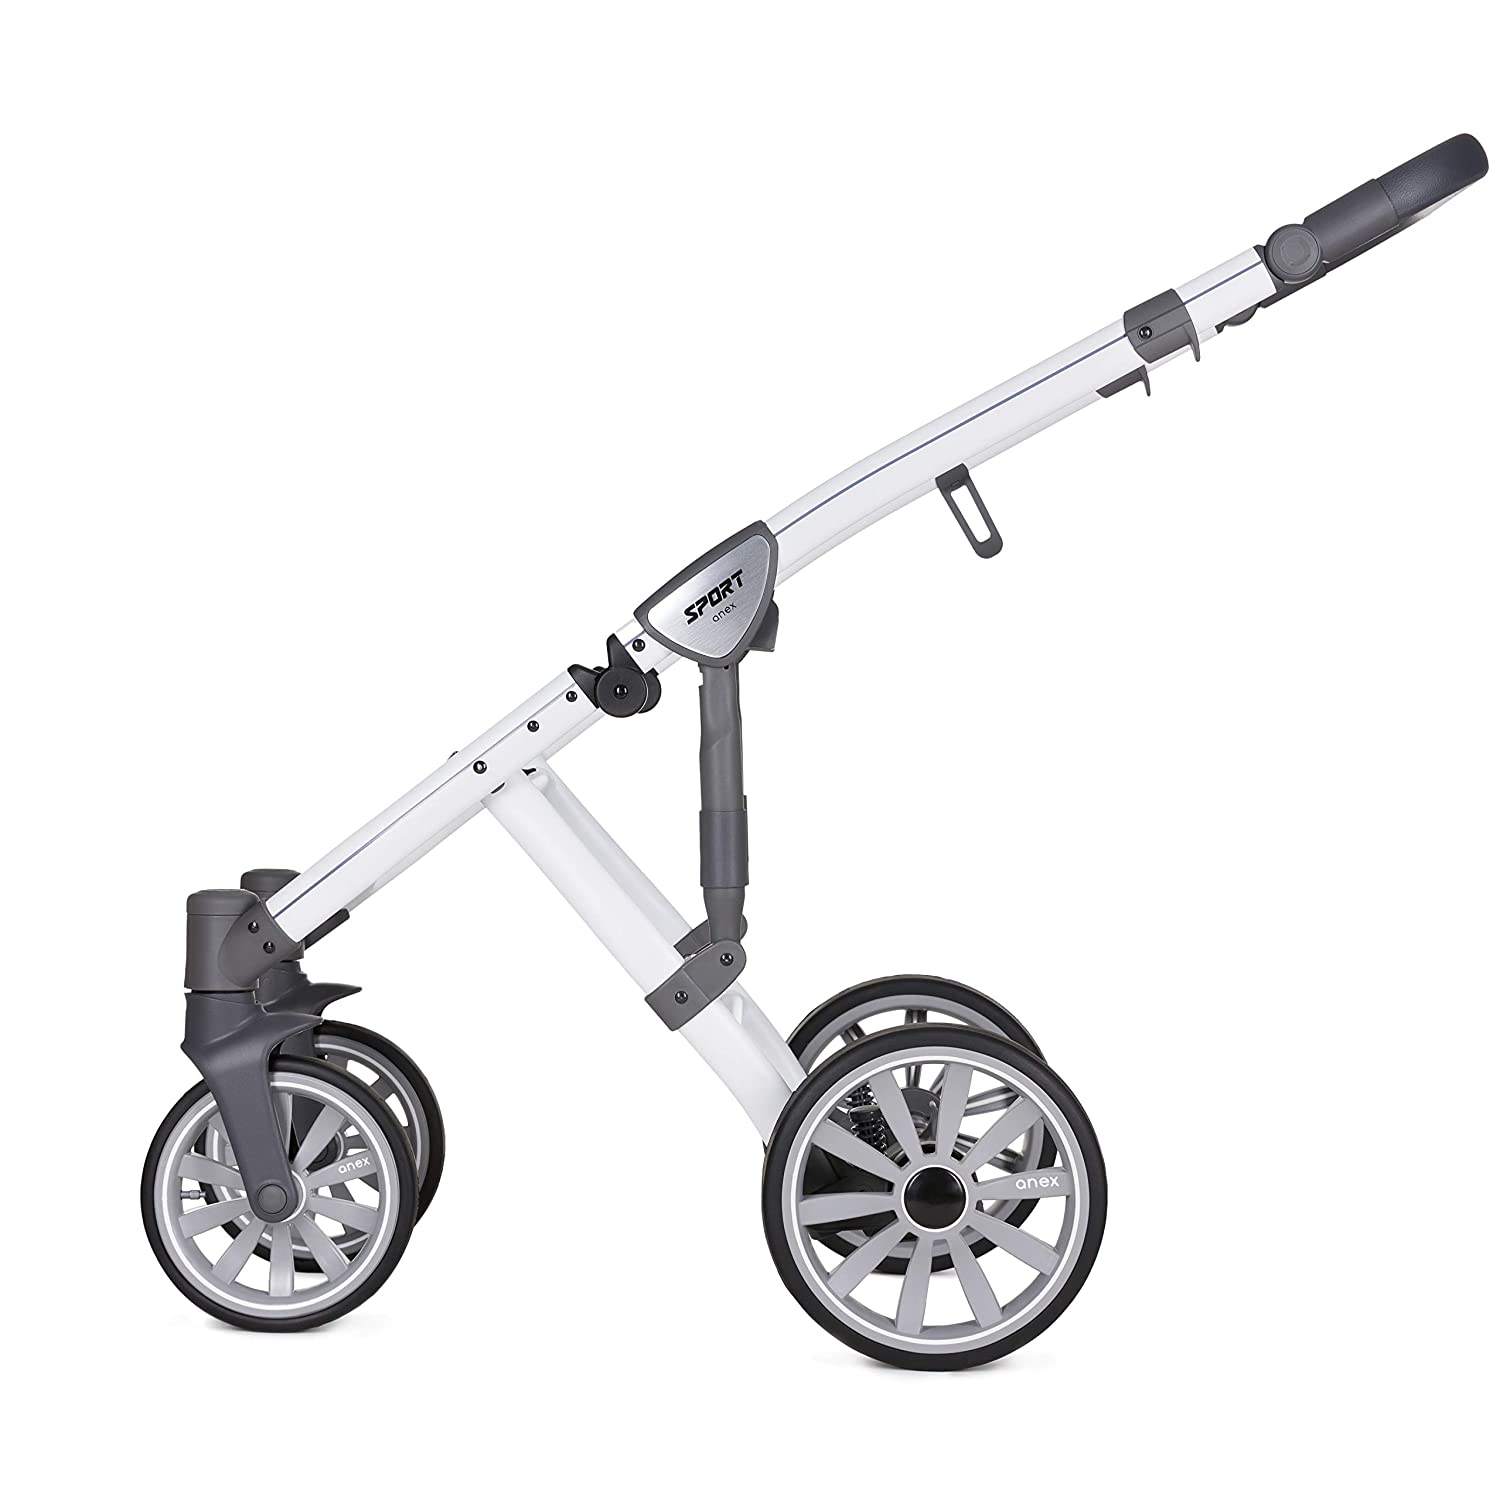 Cochecito Combi coche deportivo ANEX Baby Sport SP15 Gray Cloud gris SP15 gray cloud Talla:2in1: Amazon.es: Bebé